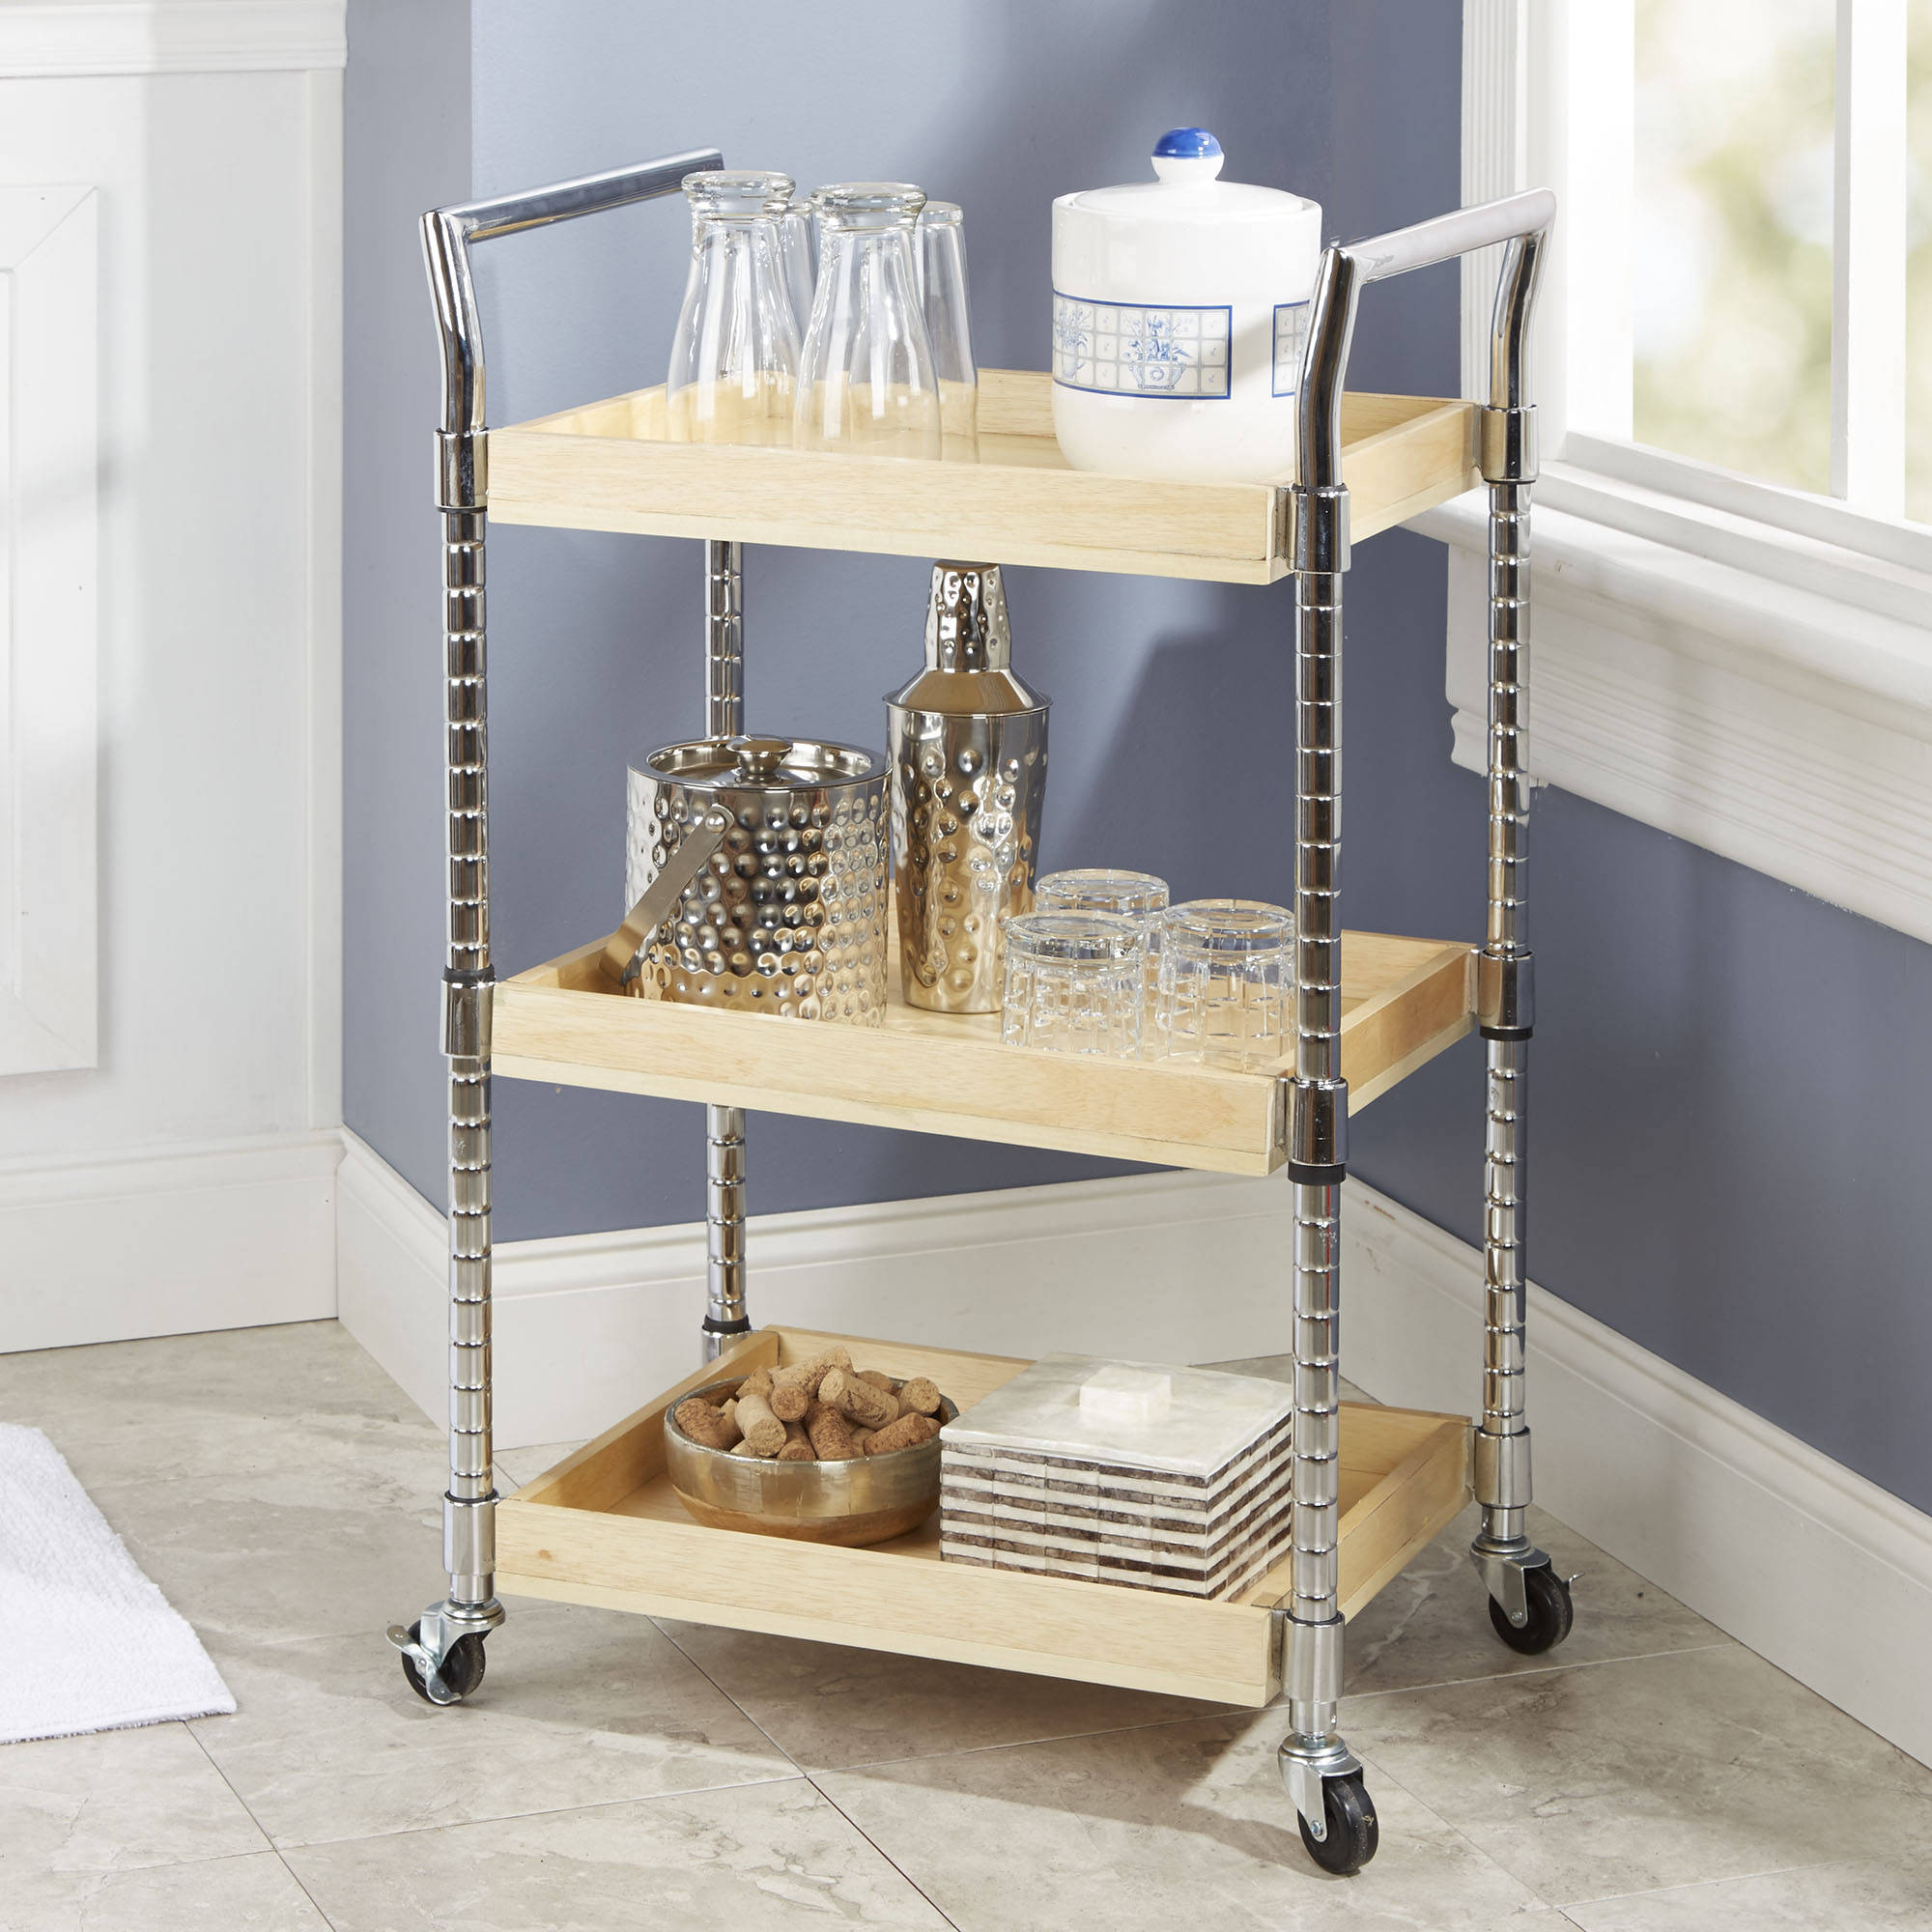 Mainstays Multi-Purpose Wood Cart, Natural Finish with Chrome Handles